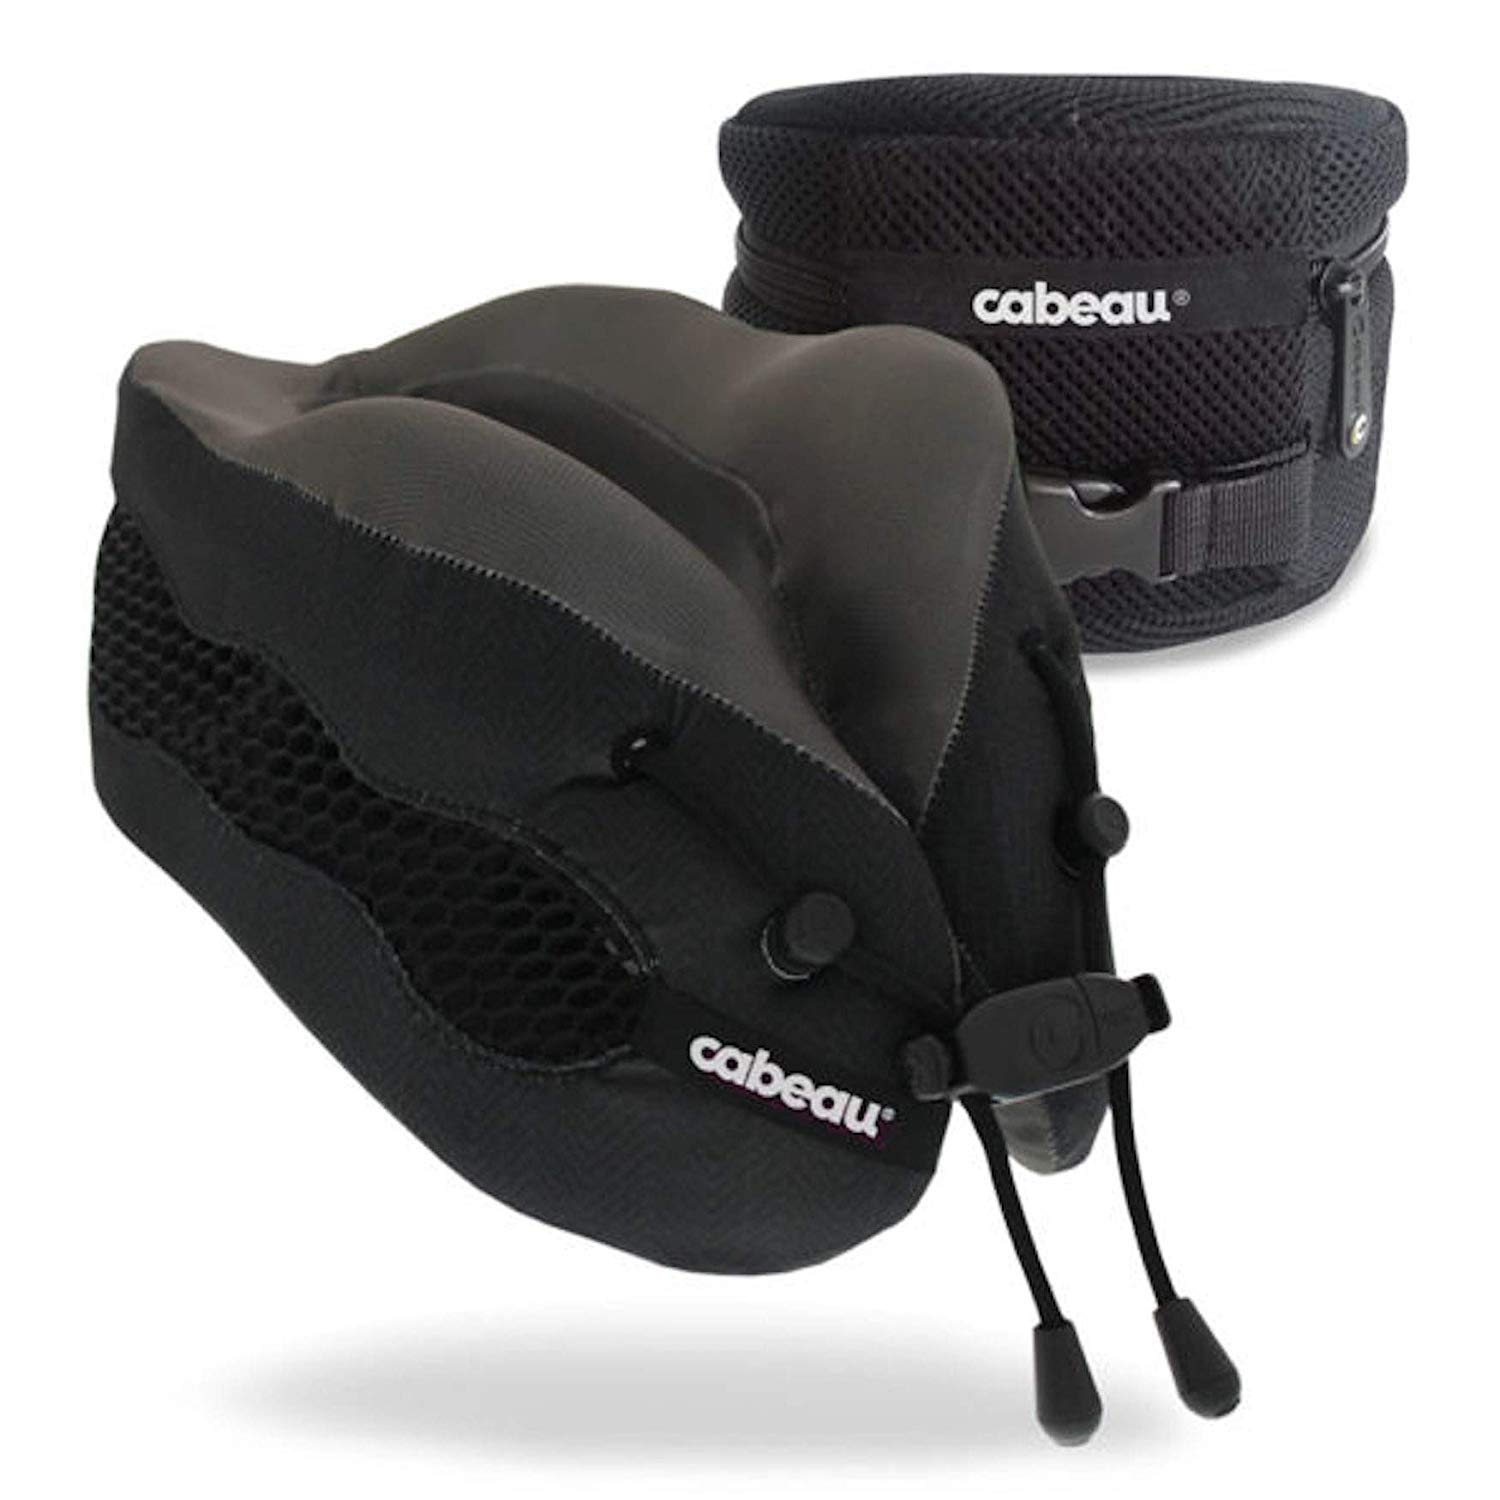 Cabeau Evolution Cool Travel Pillow- The Best Air Circulating Head and Neck Memory Foam Cooling Airplane Neck Pillow - Backed by Sleep Science for Maximum Sleep Support - Black by Cabeau